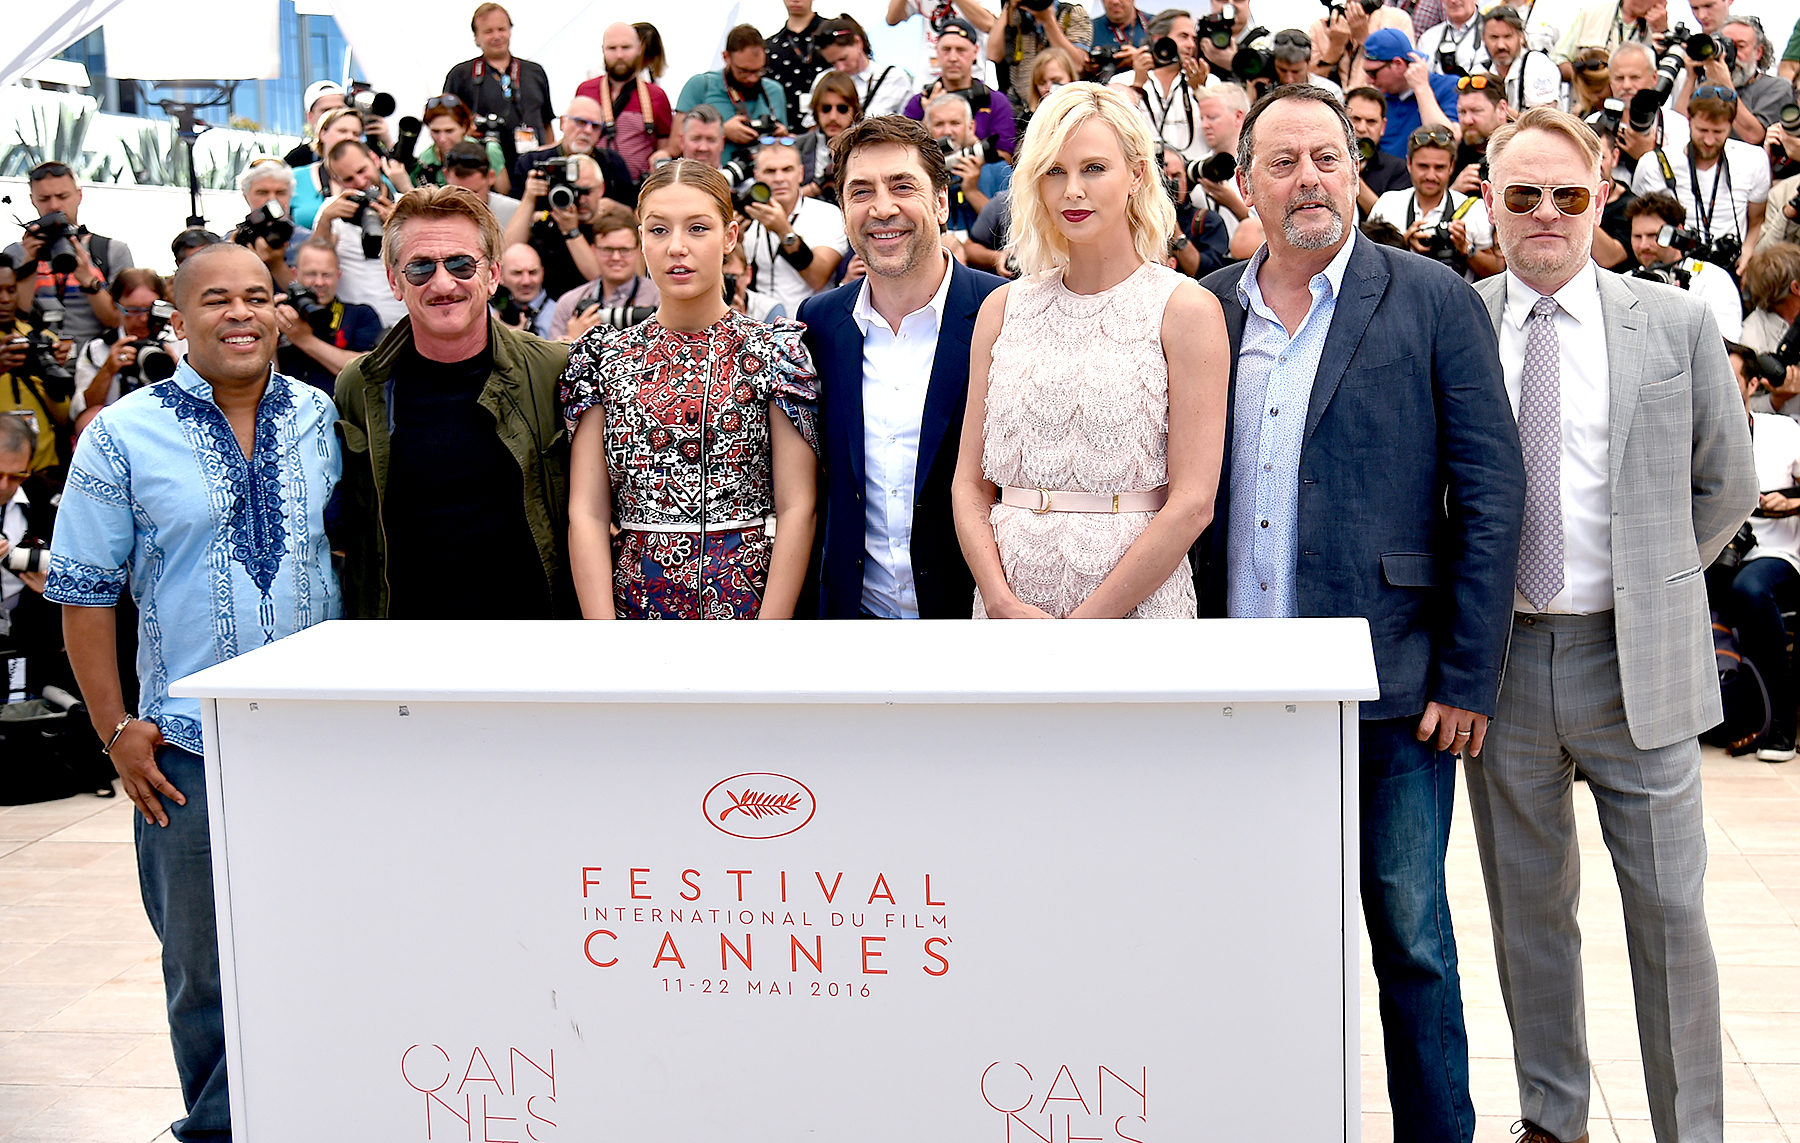 Zubin Cooper, Sean Penn, Adele Exarchopoulos, Javier Bardem, Charlize Theron, Jean Reno and Jared Harris (from left) pose on May 20, 2016 during a photocall for the film.